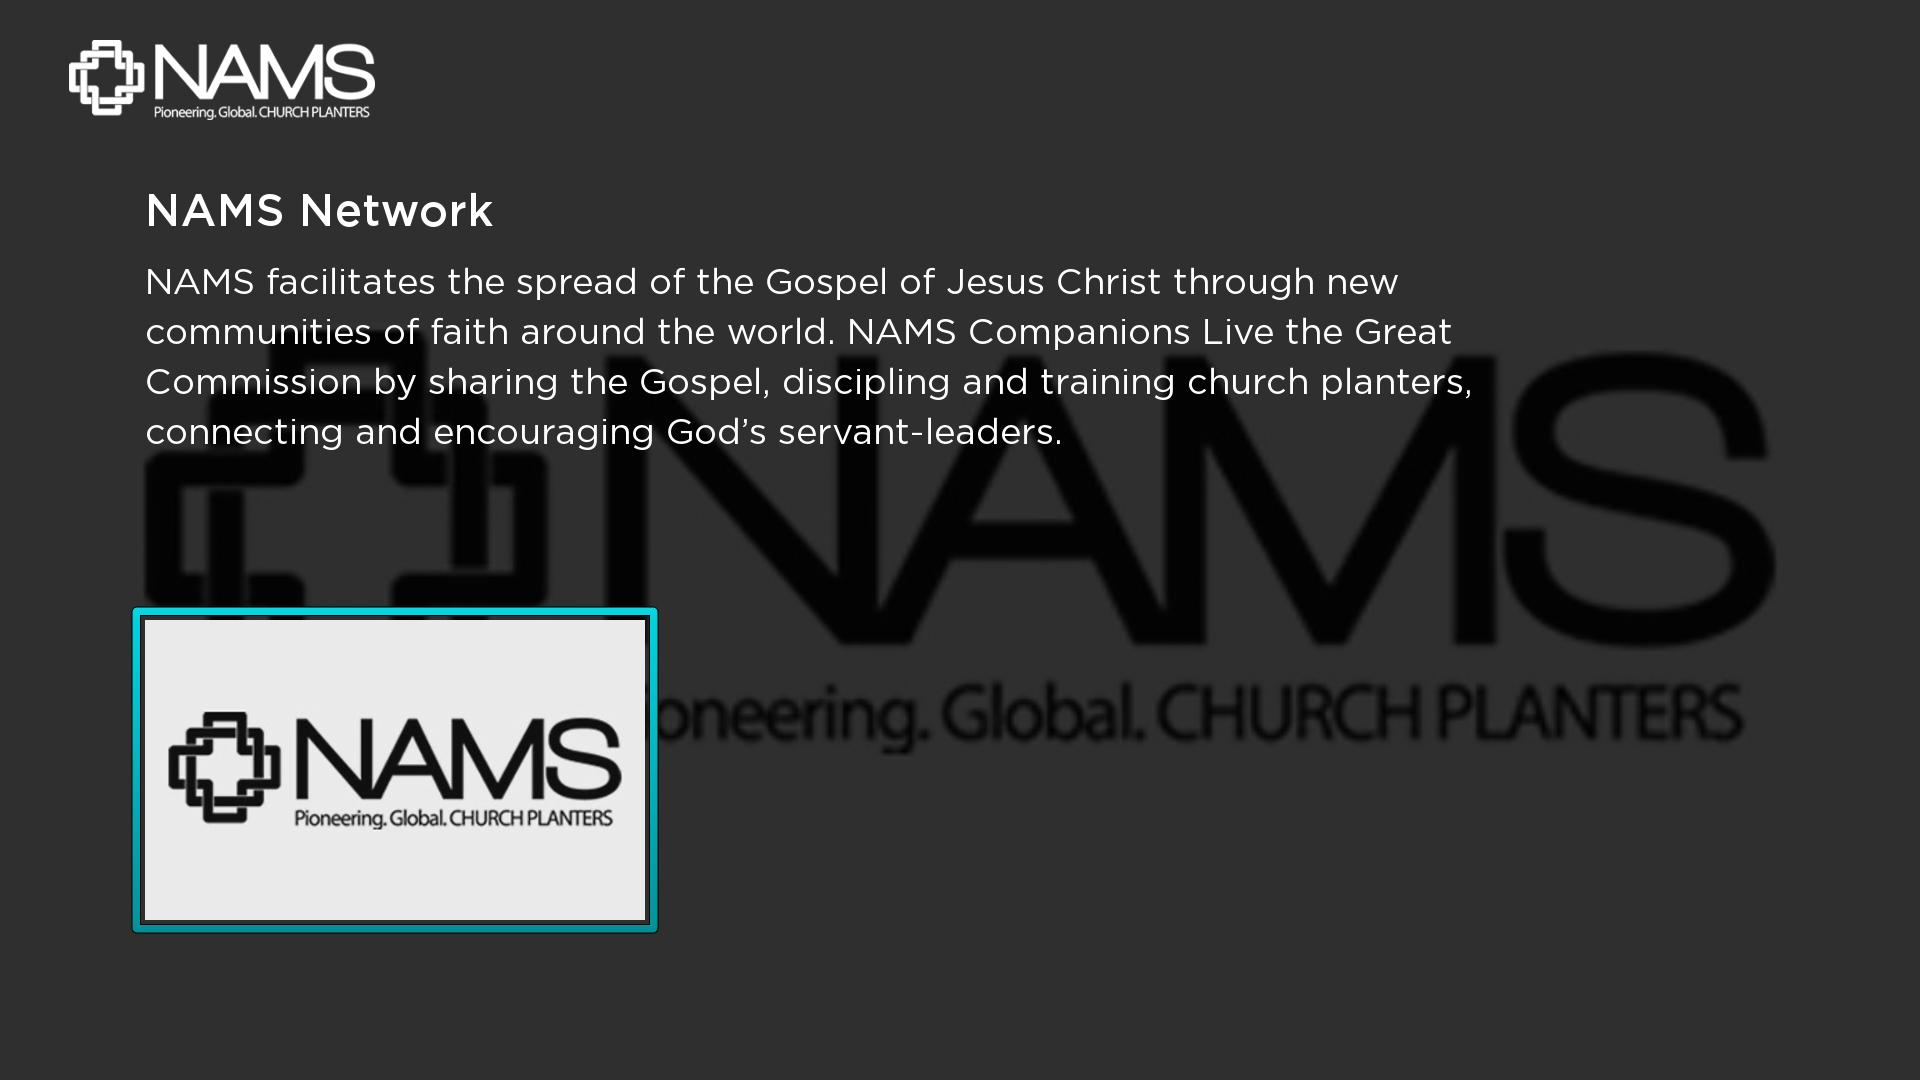 NAMS Network Screenshot 001